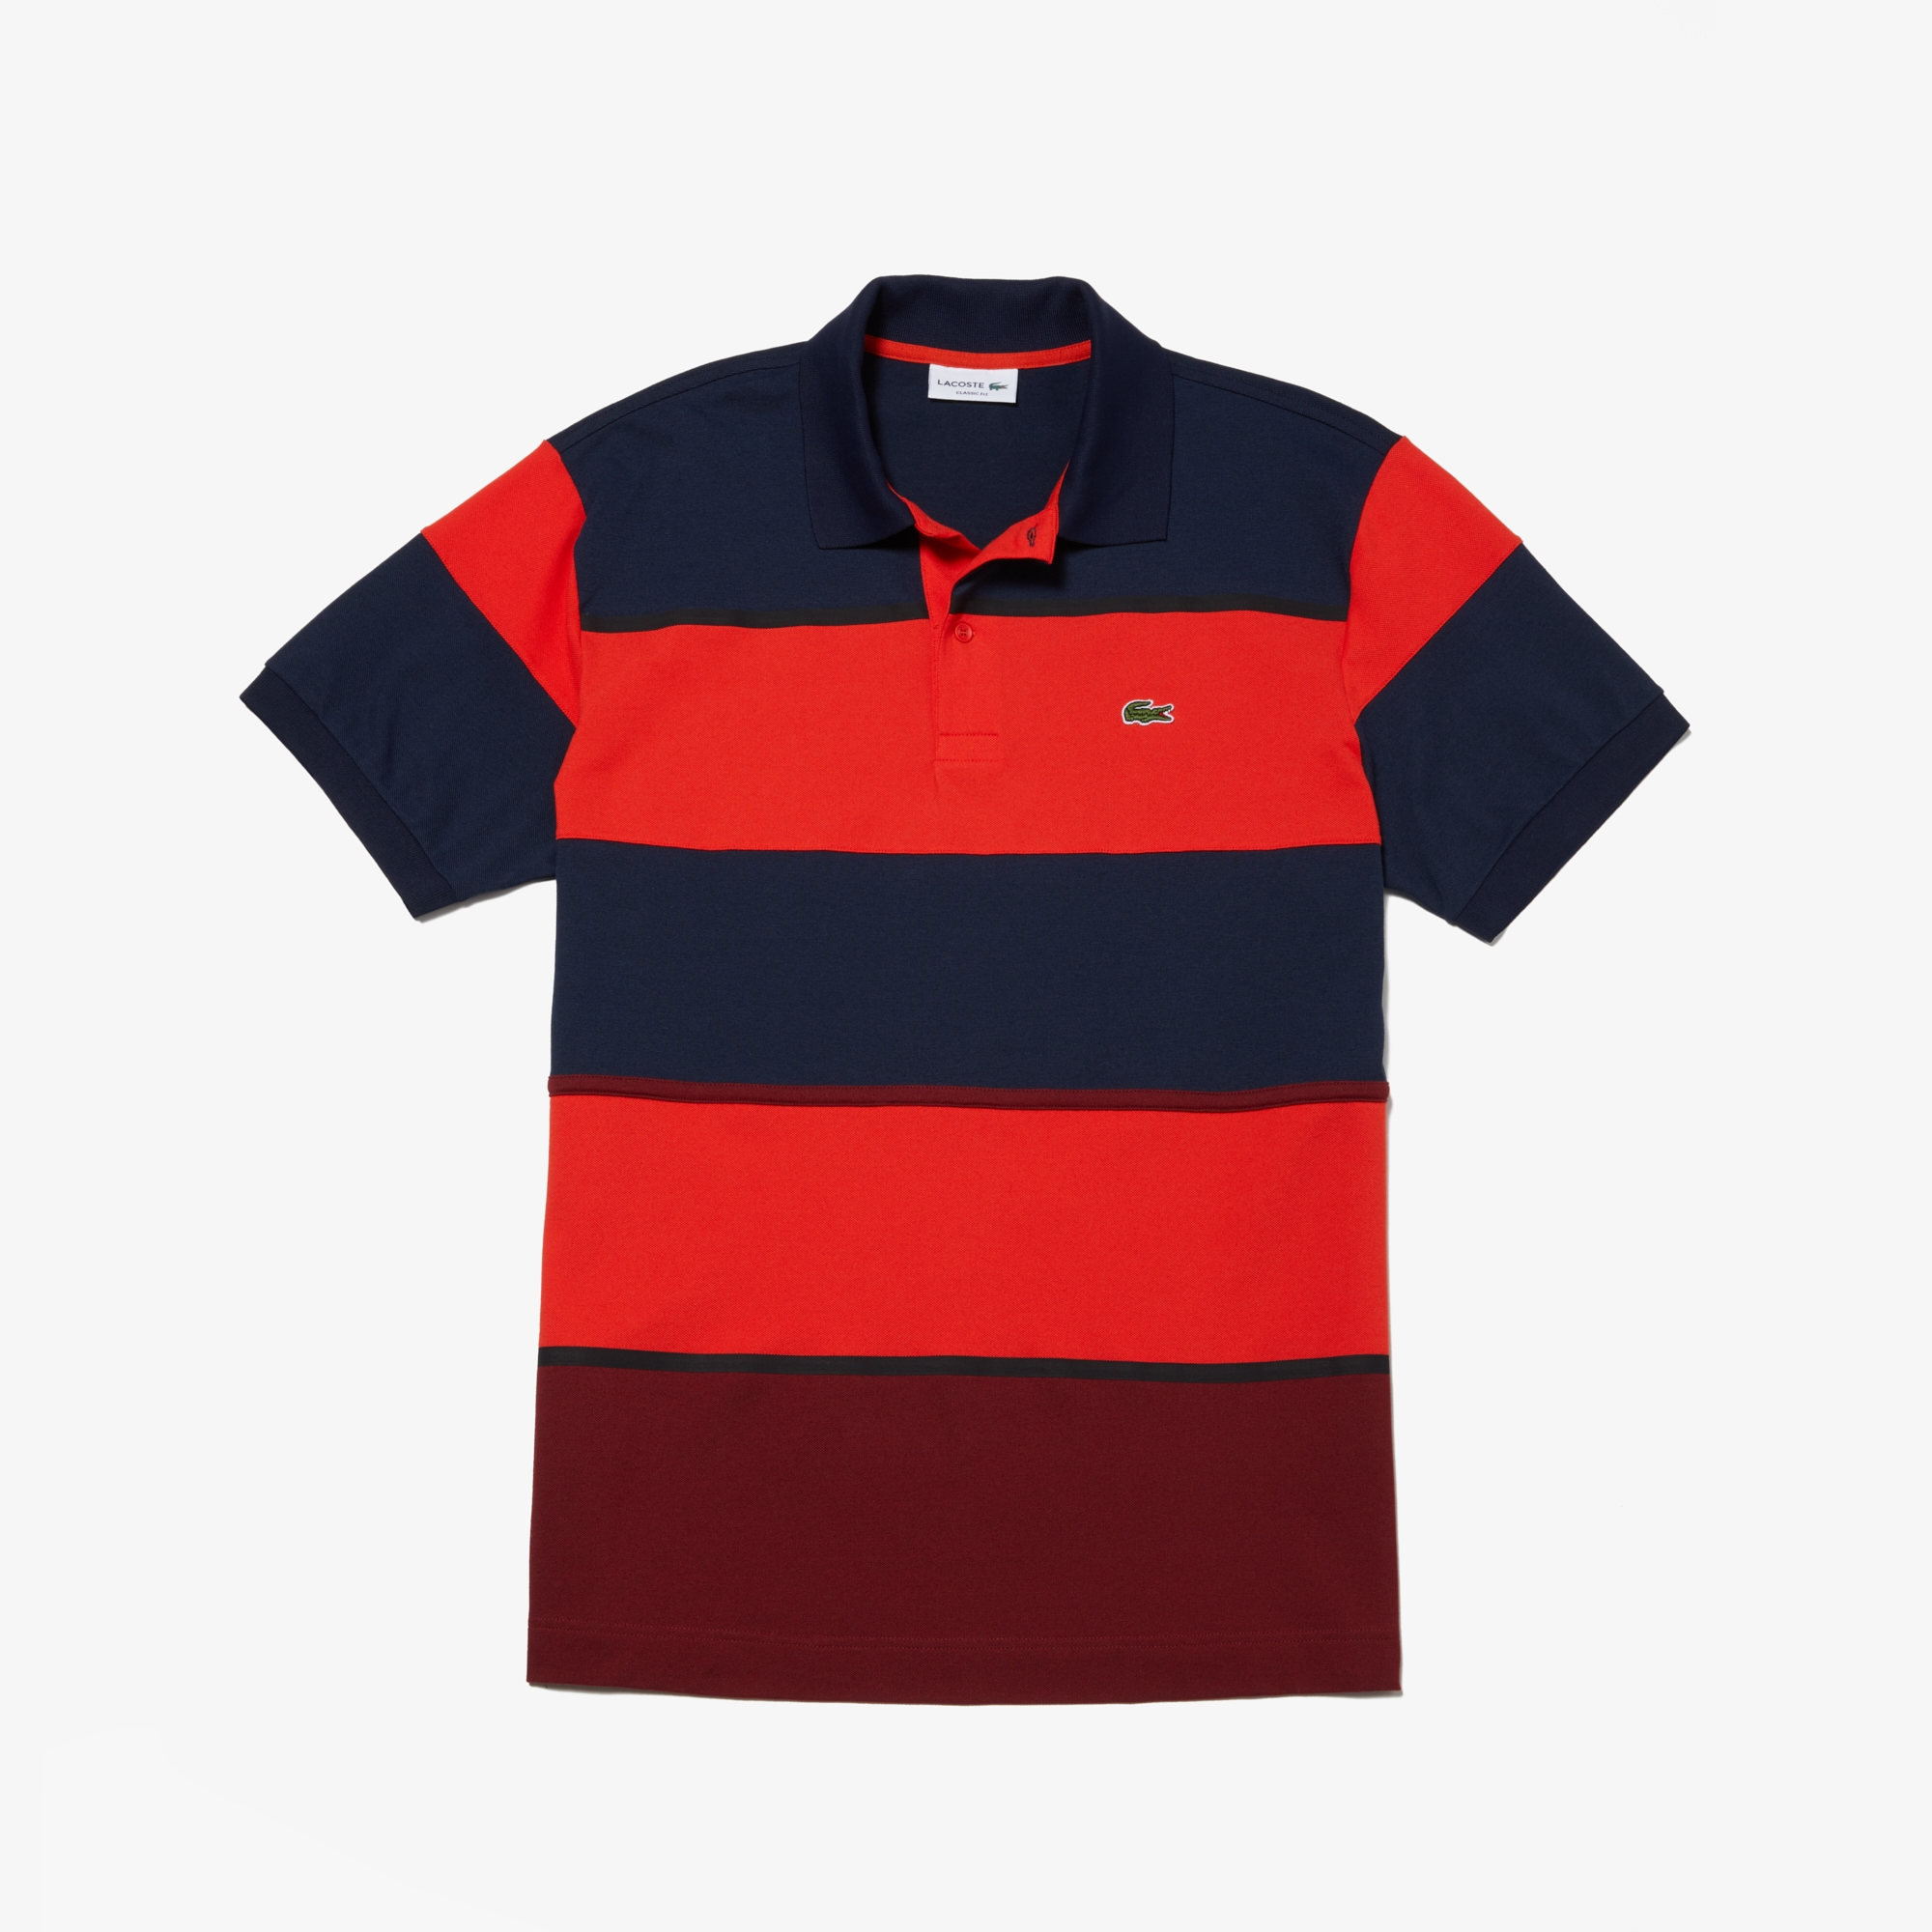 Men's L.12.12 Technical Piqué Polo